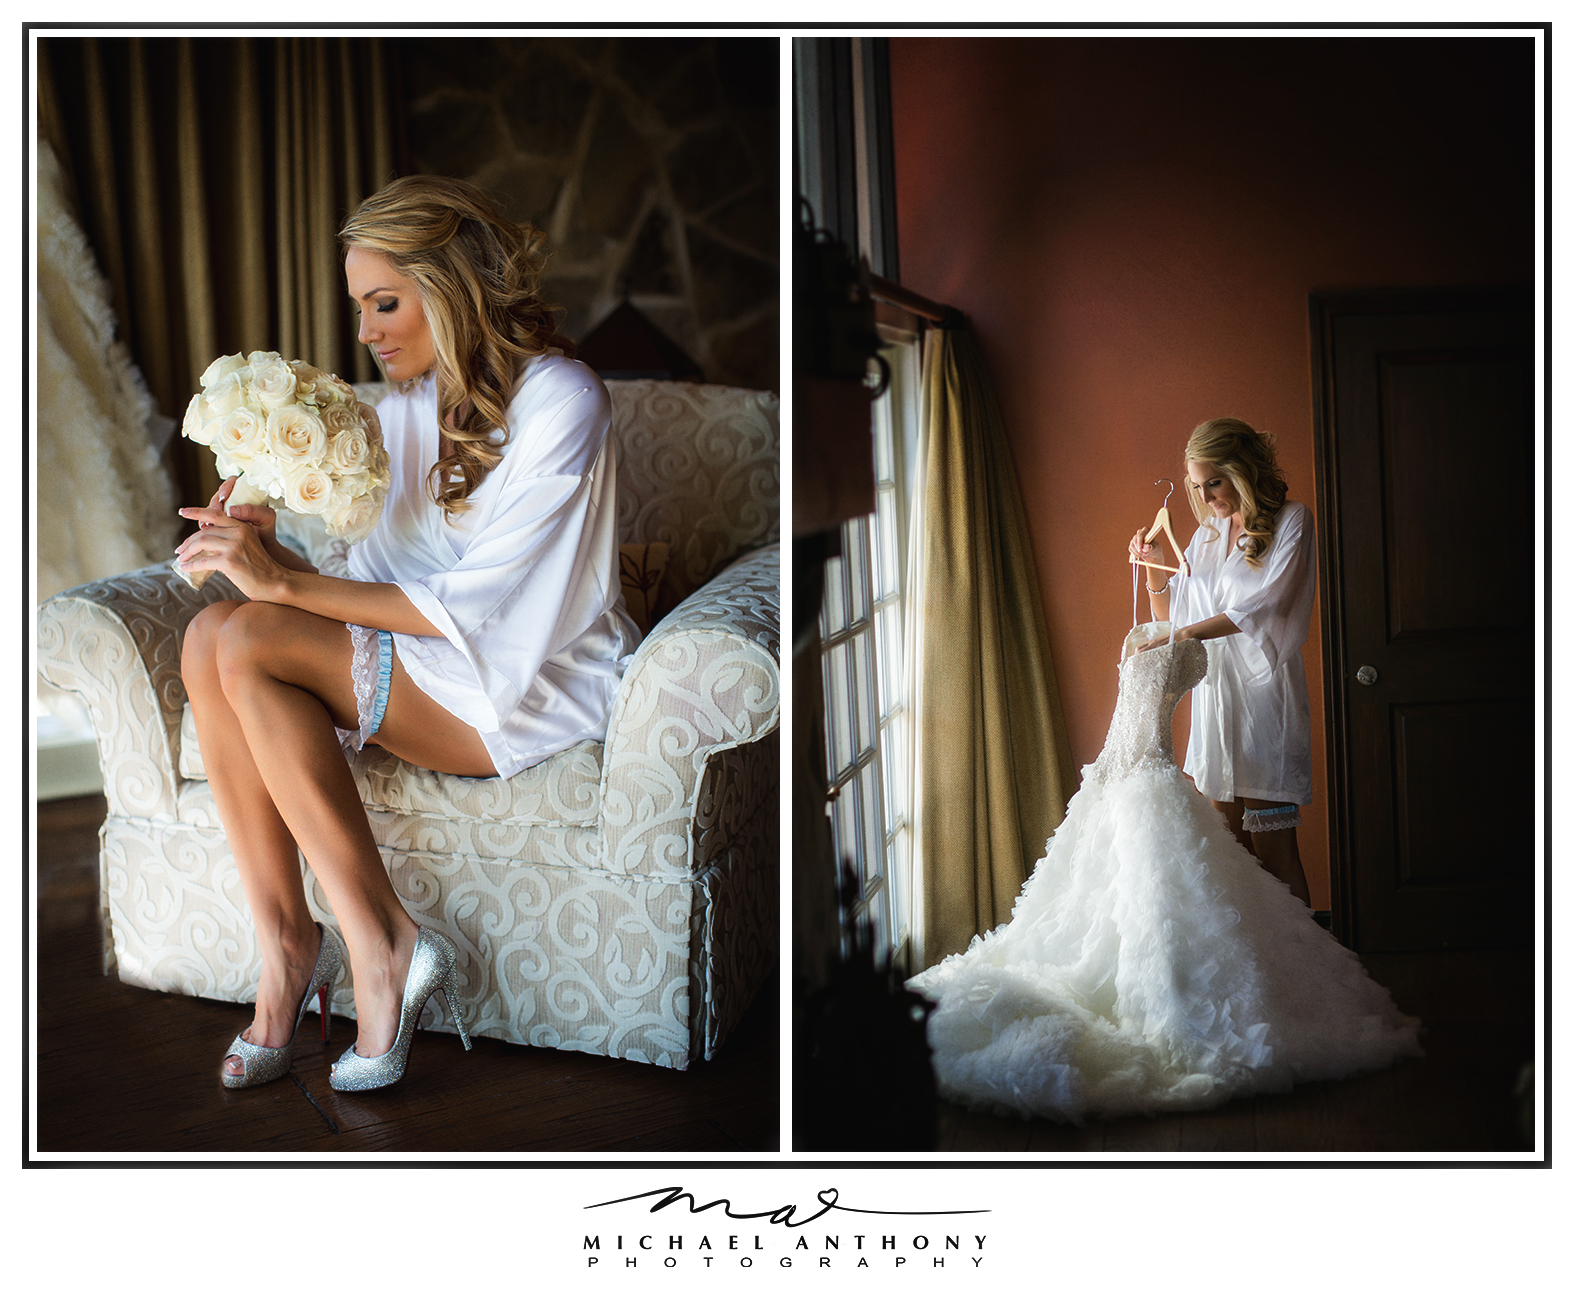 Heather got ready at the stunning Westlake Village Inn in Westlake Village, CA.  This is a gorgeous Los Angeles Wedding Venue and we were happy to capture these images for her.  This suite was large, decorated beautiful, and had an awesome window which allows for nice light to flow into the room.